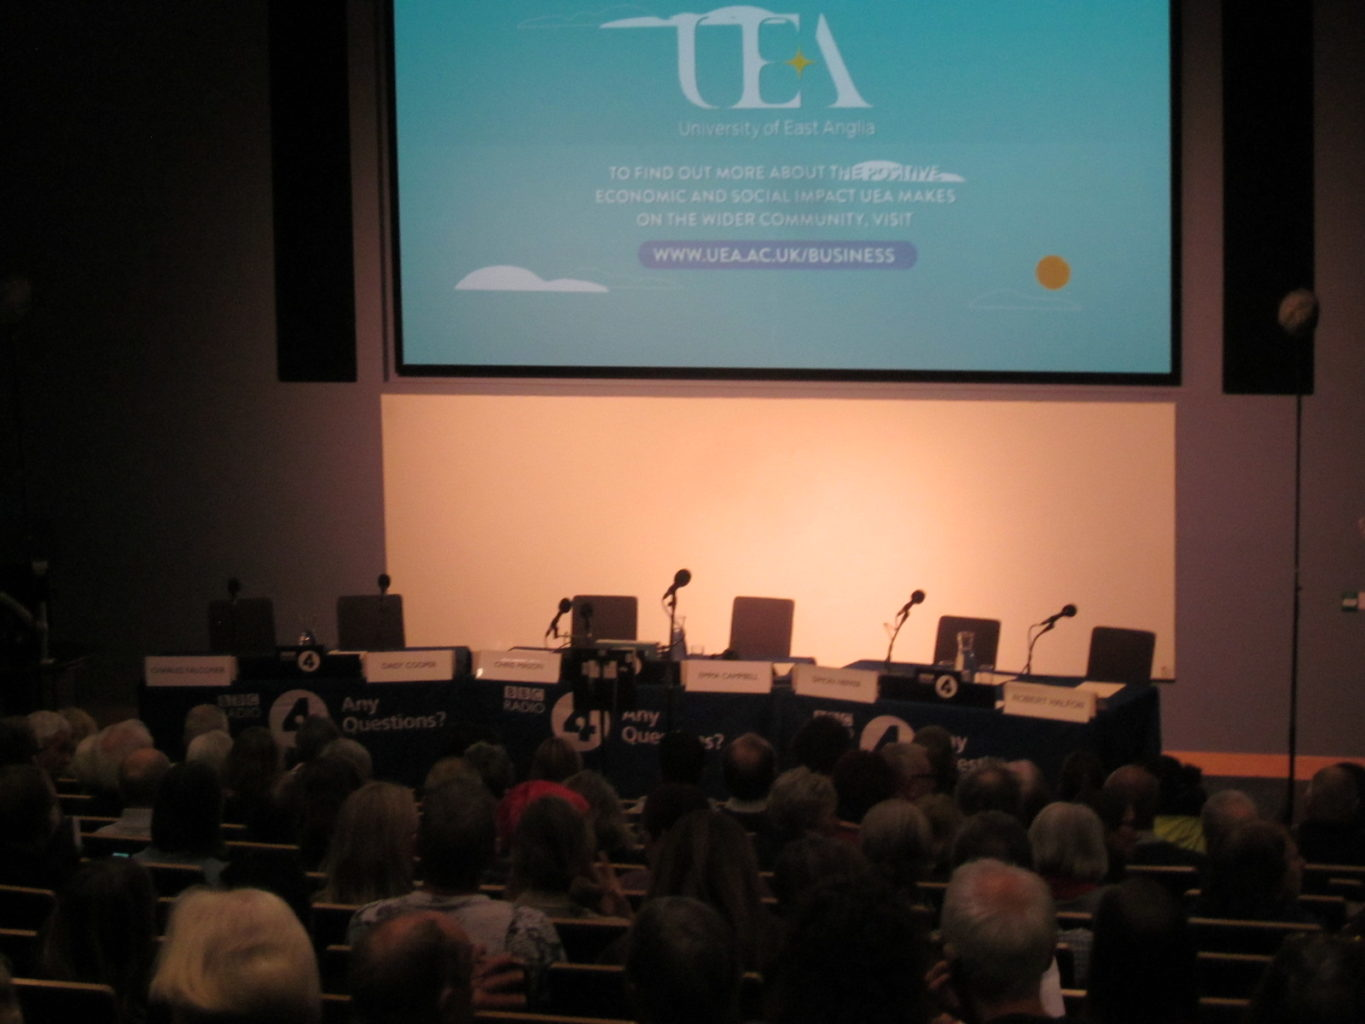 Getting ready for Any Questions panel at UEA